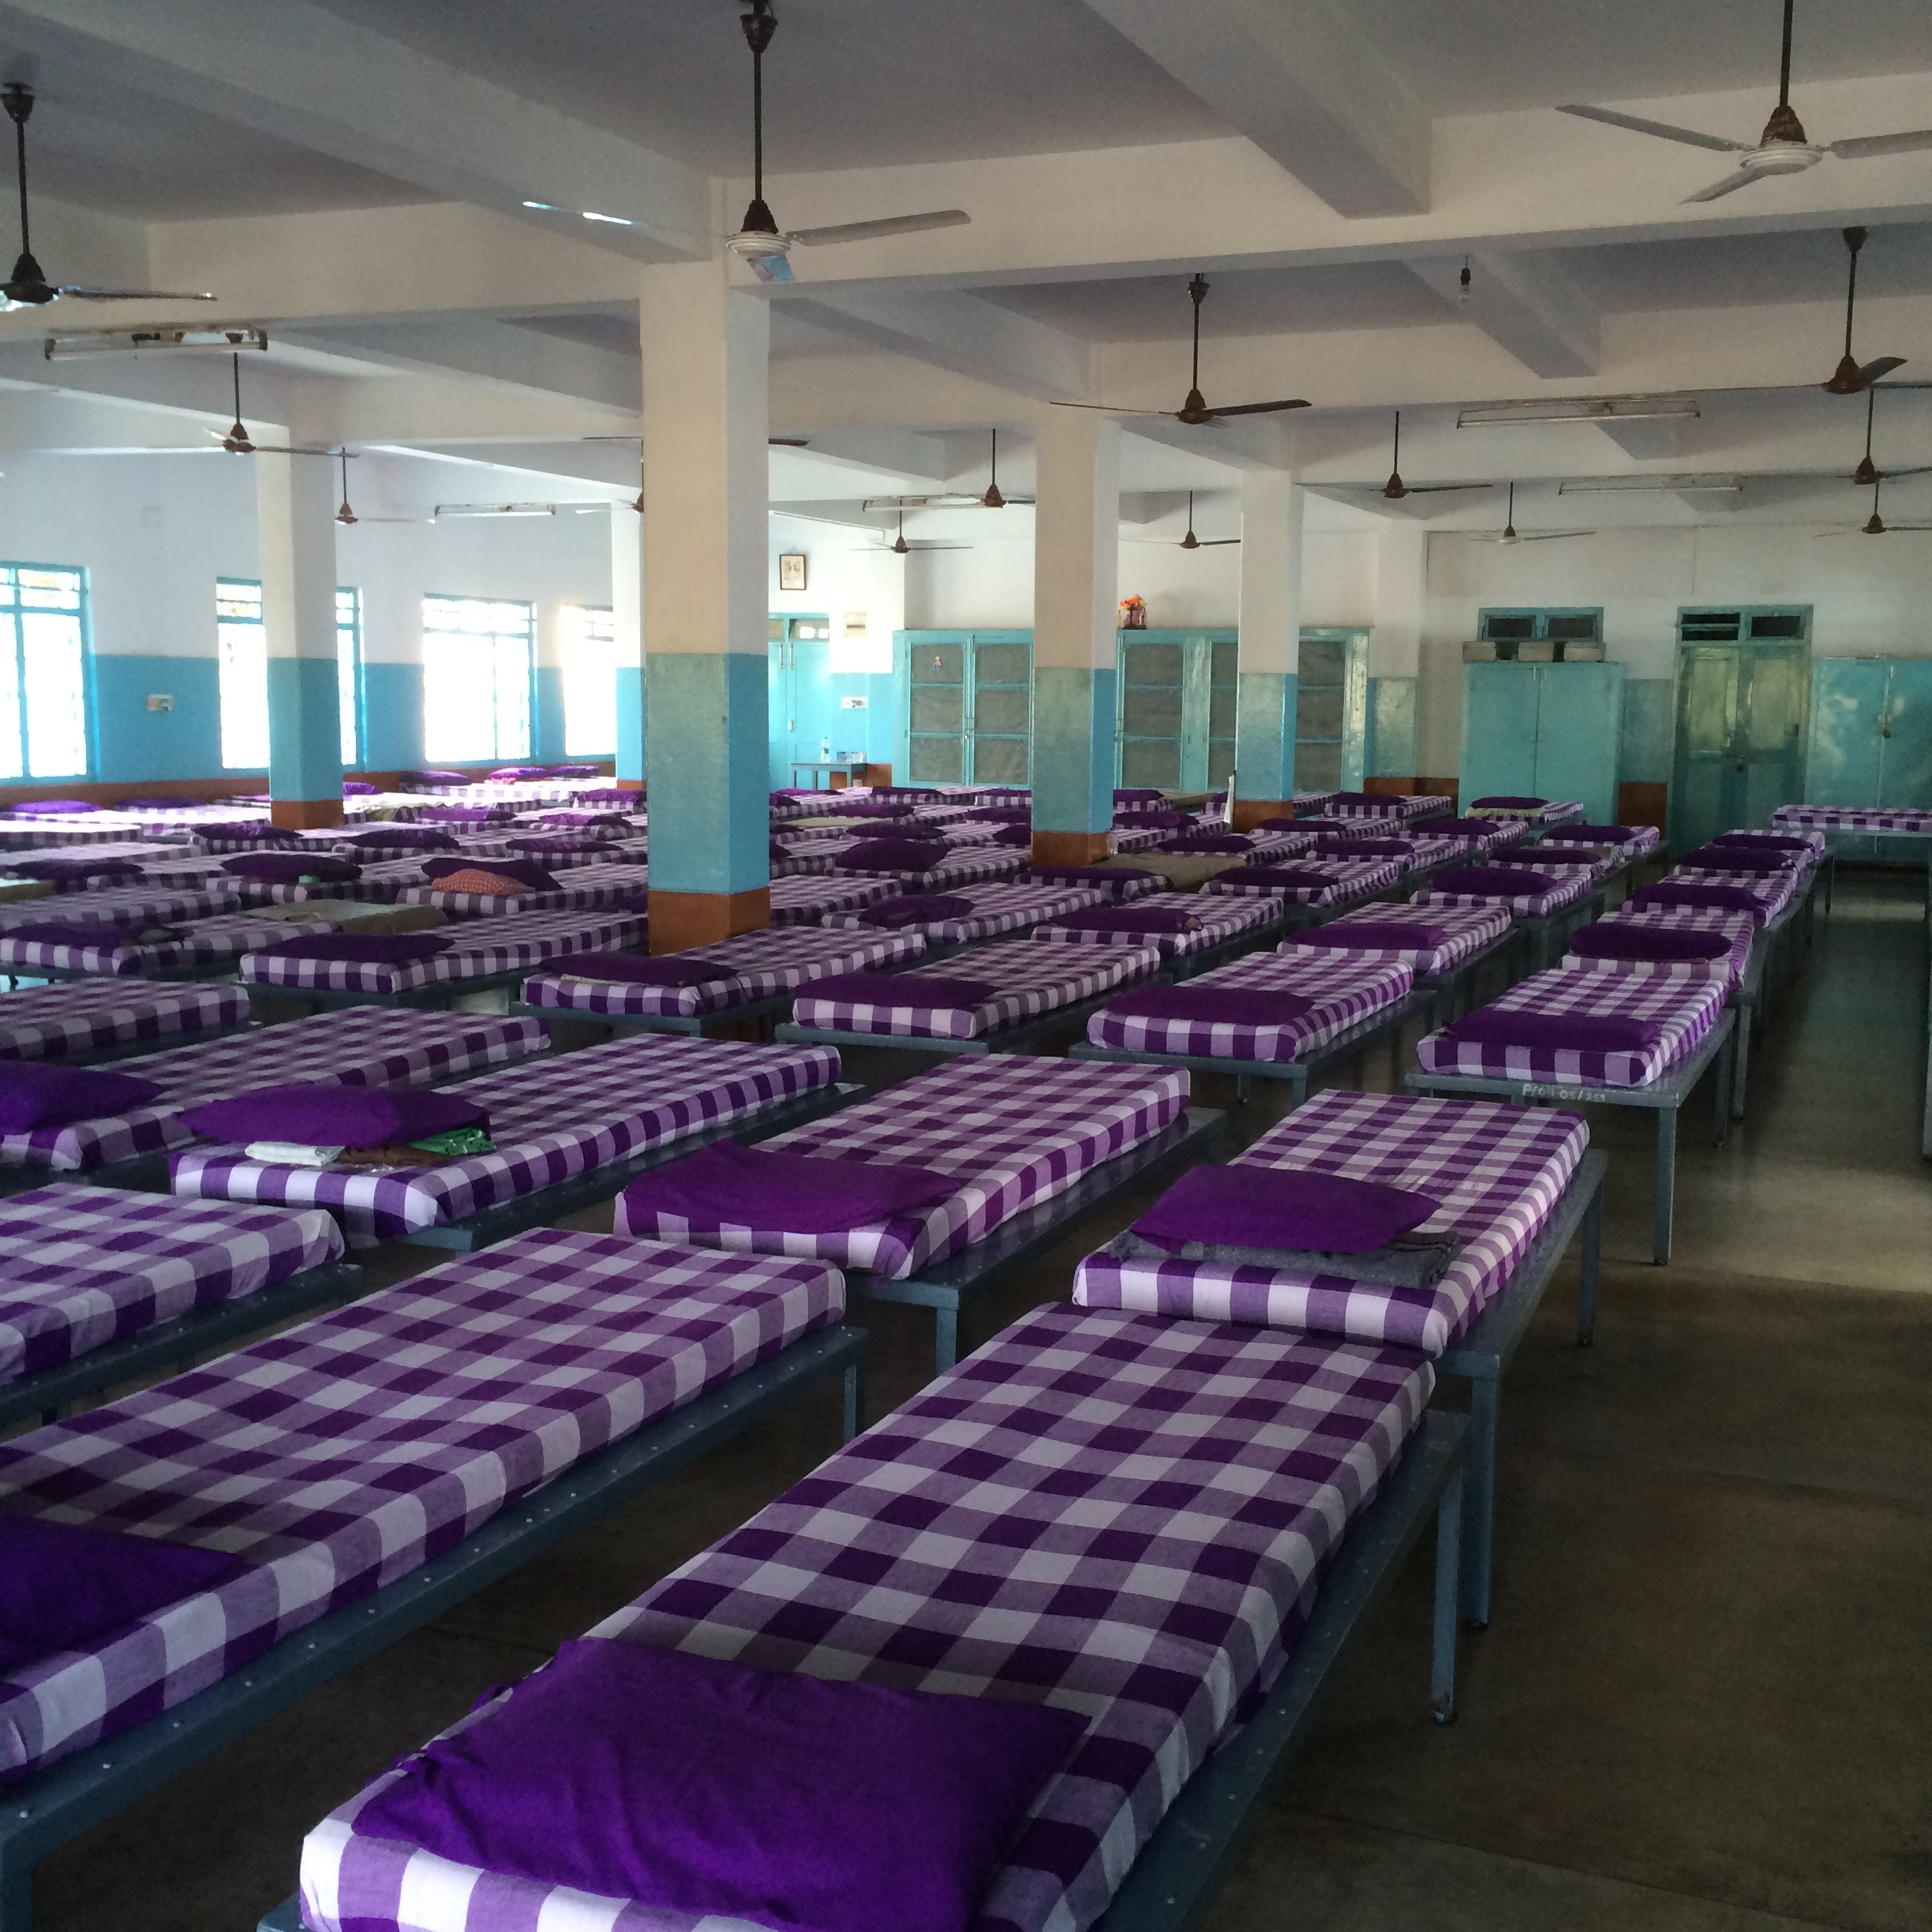 Rows of cots at Prem Dan